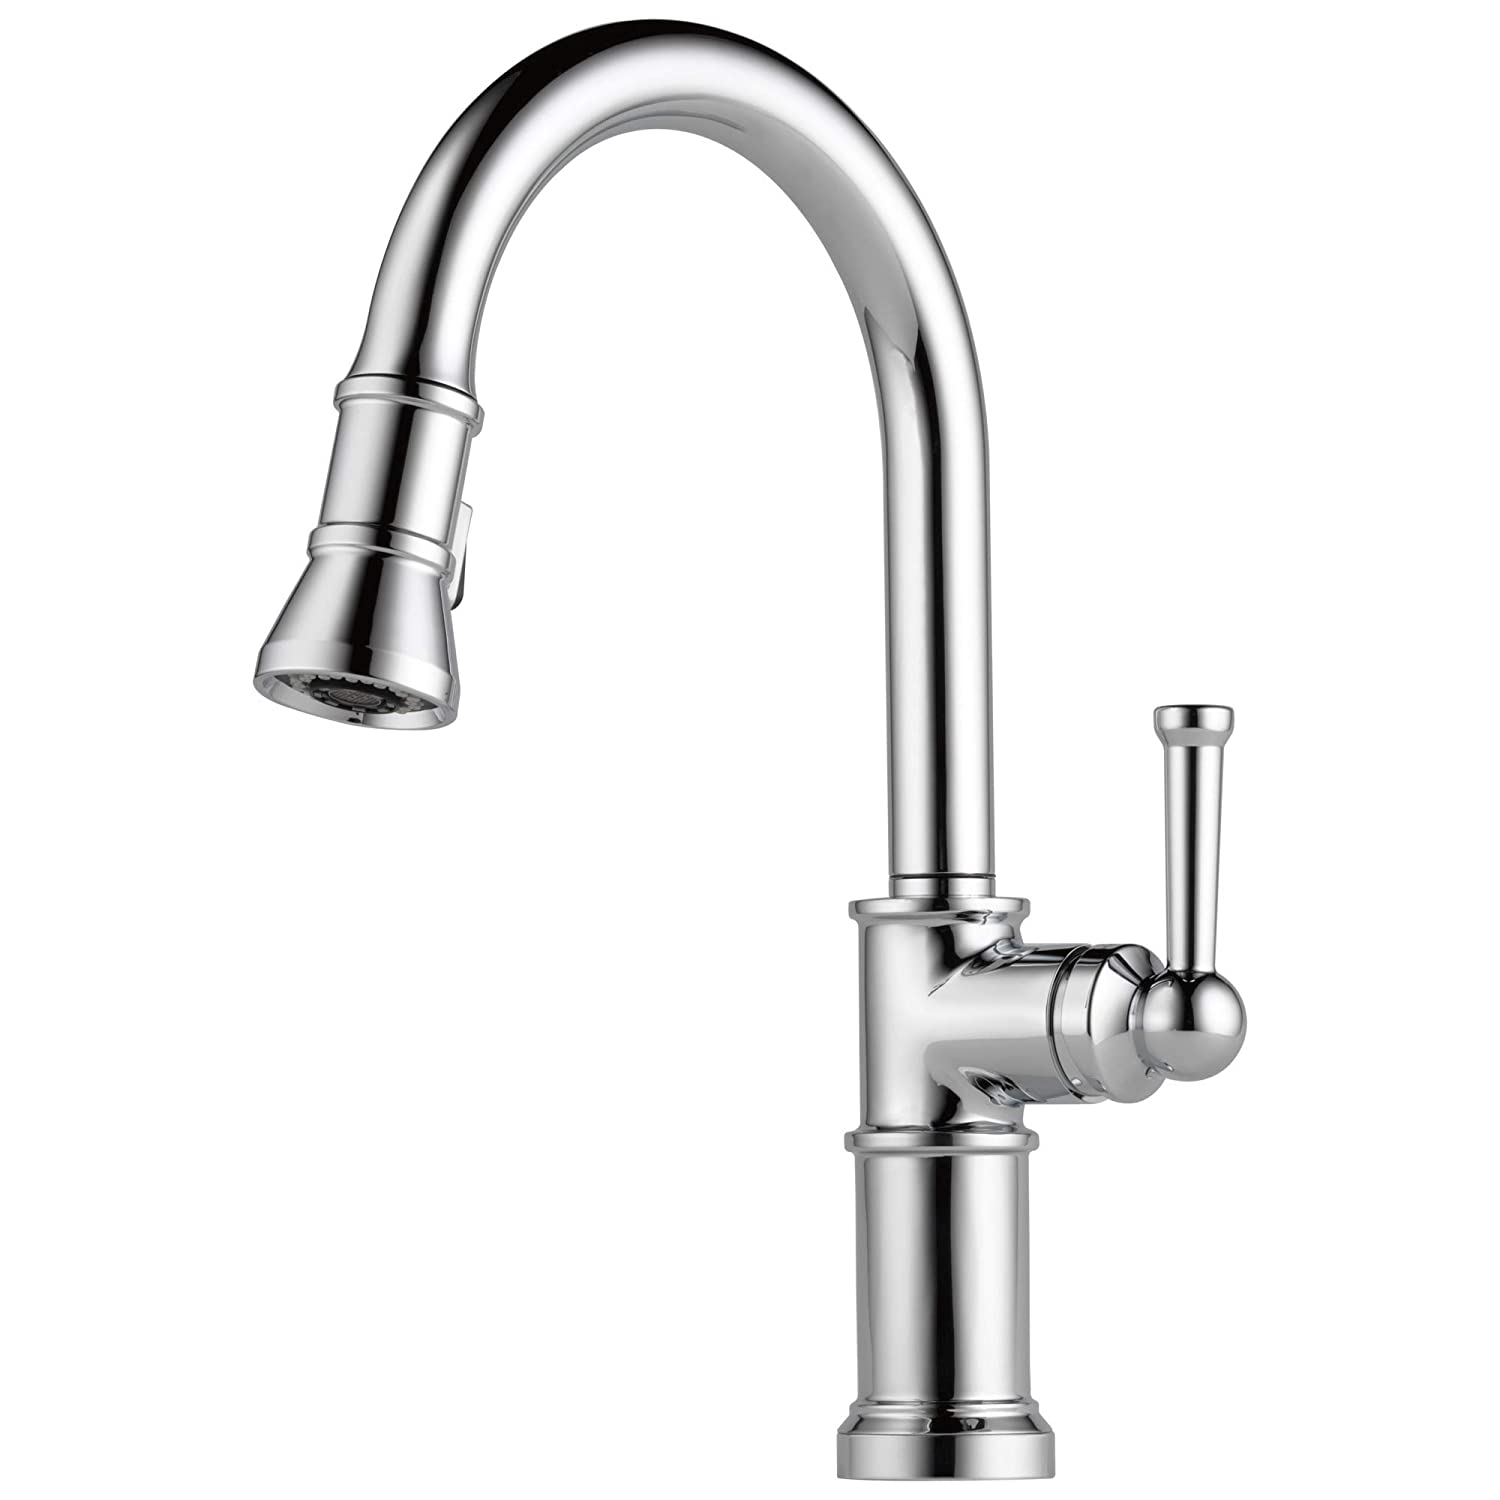 Brizo 63025LF-PC – Artesso Single Handle Pull-Down Kitchen Faucet – Chrome Finish